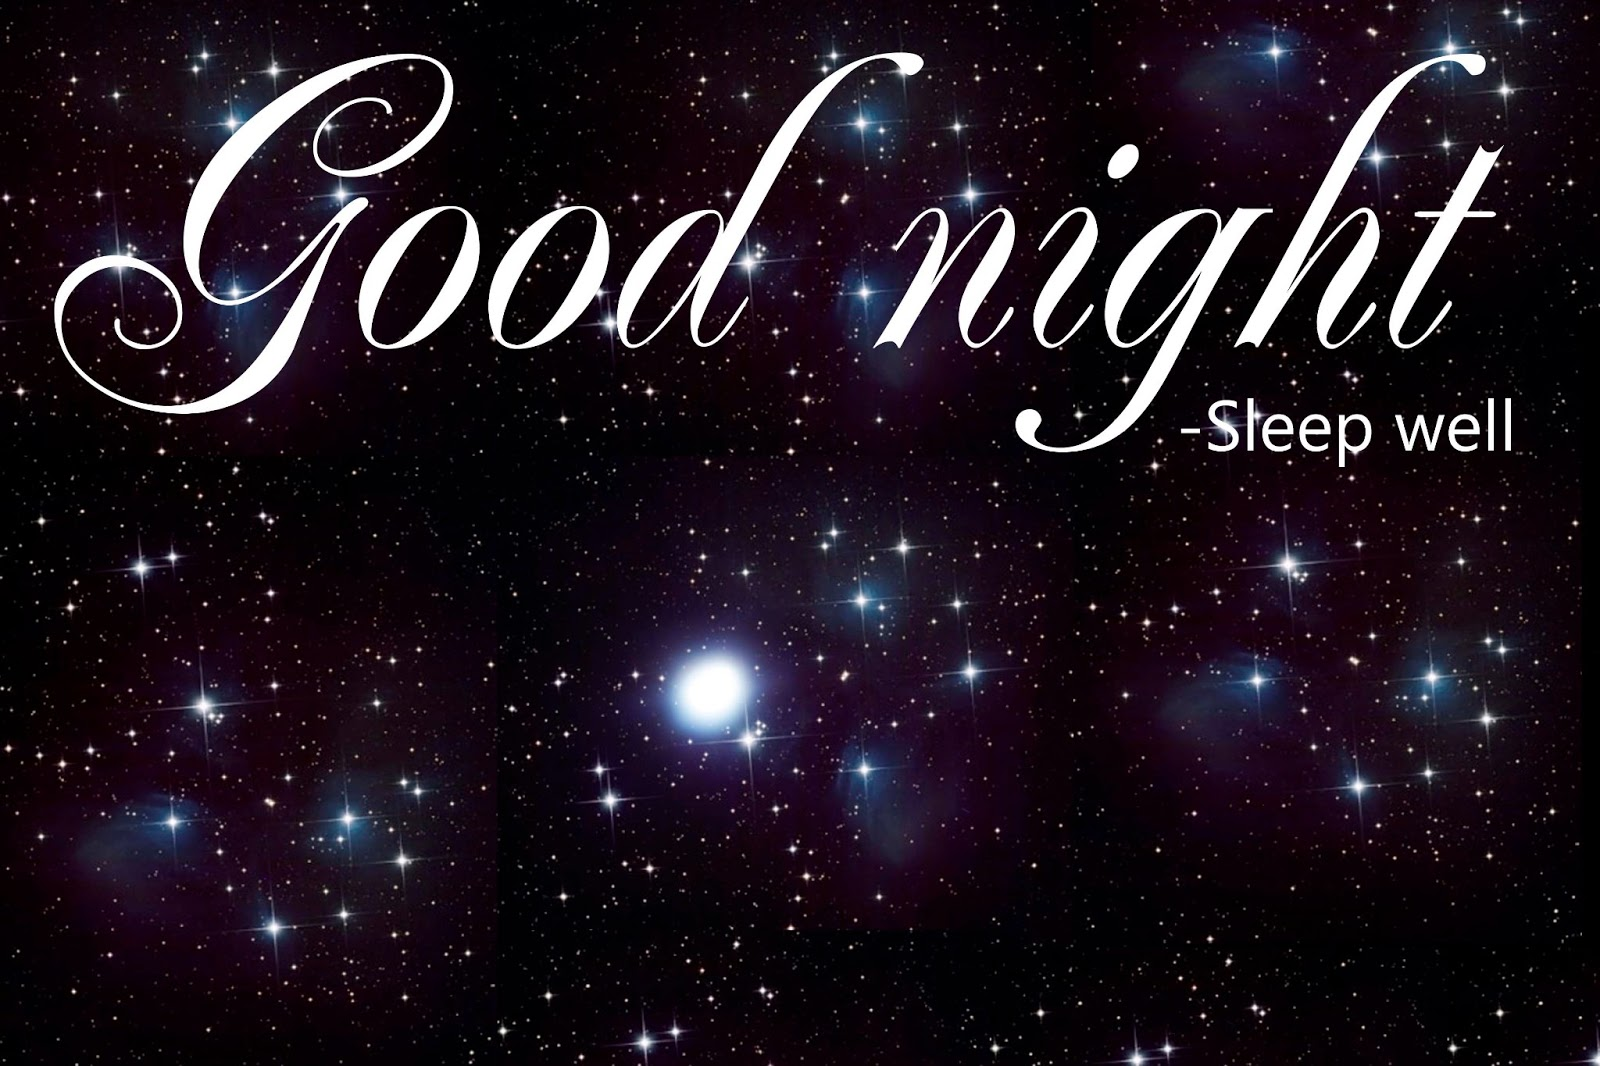 Goodnight Sweetheart Quotes Quotesgram: Really Sexy Good Night Quotes. QuotesGram